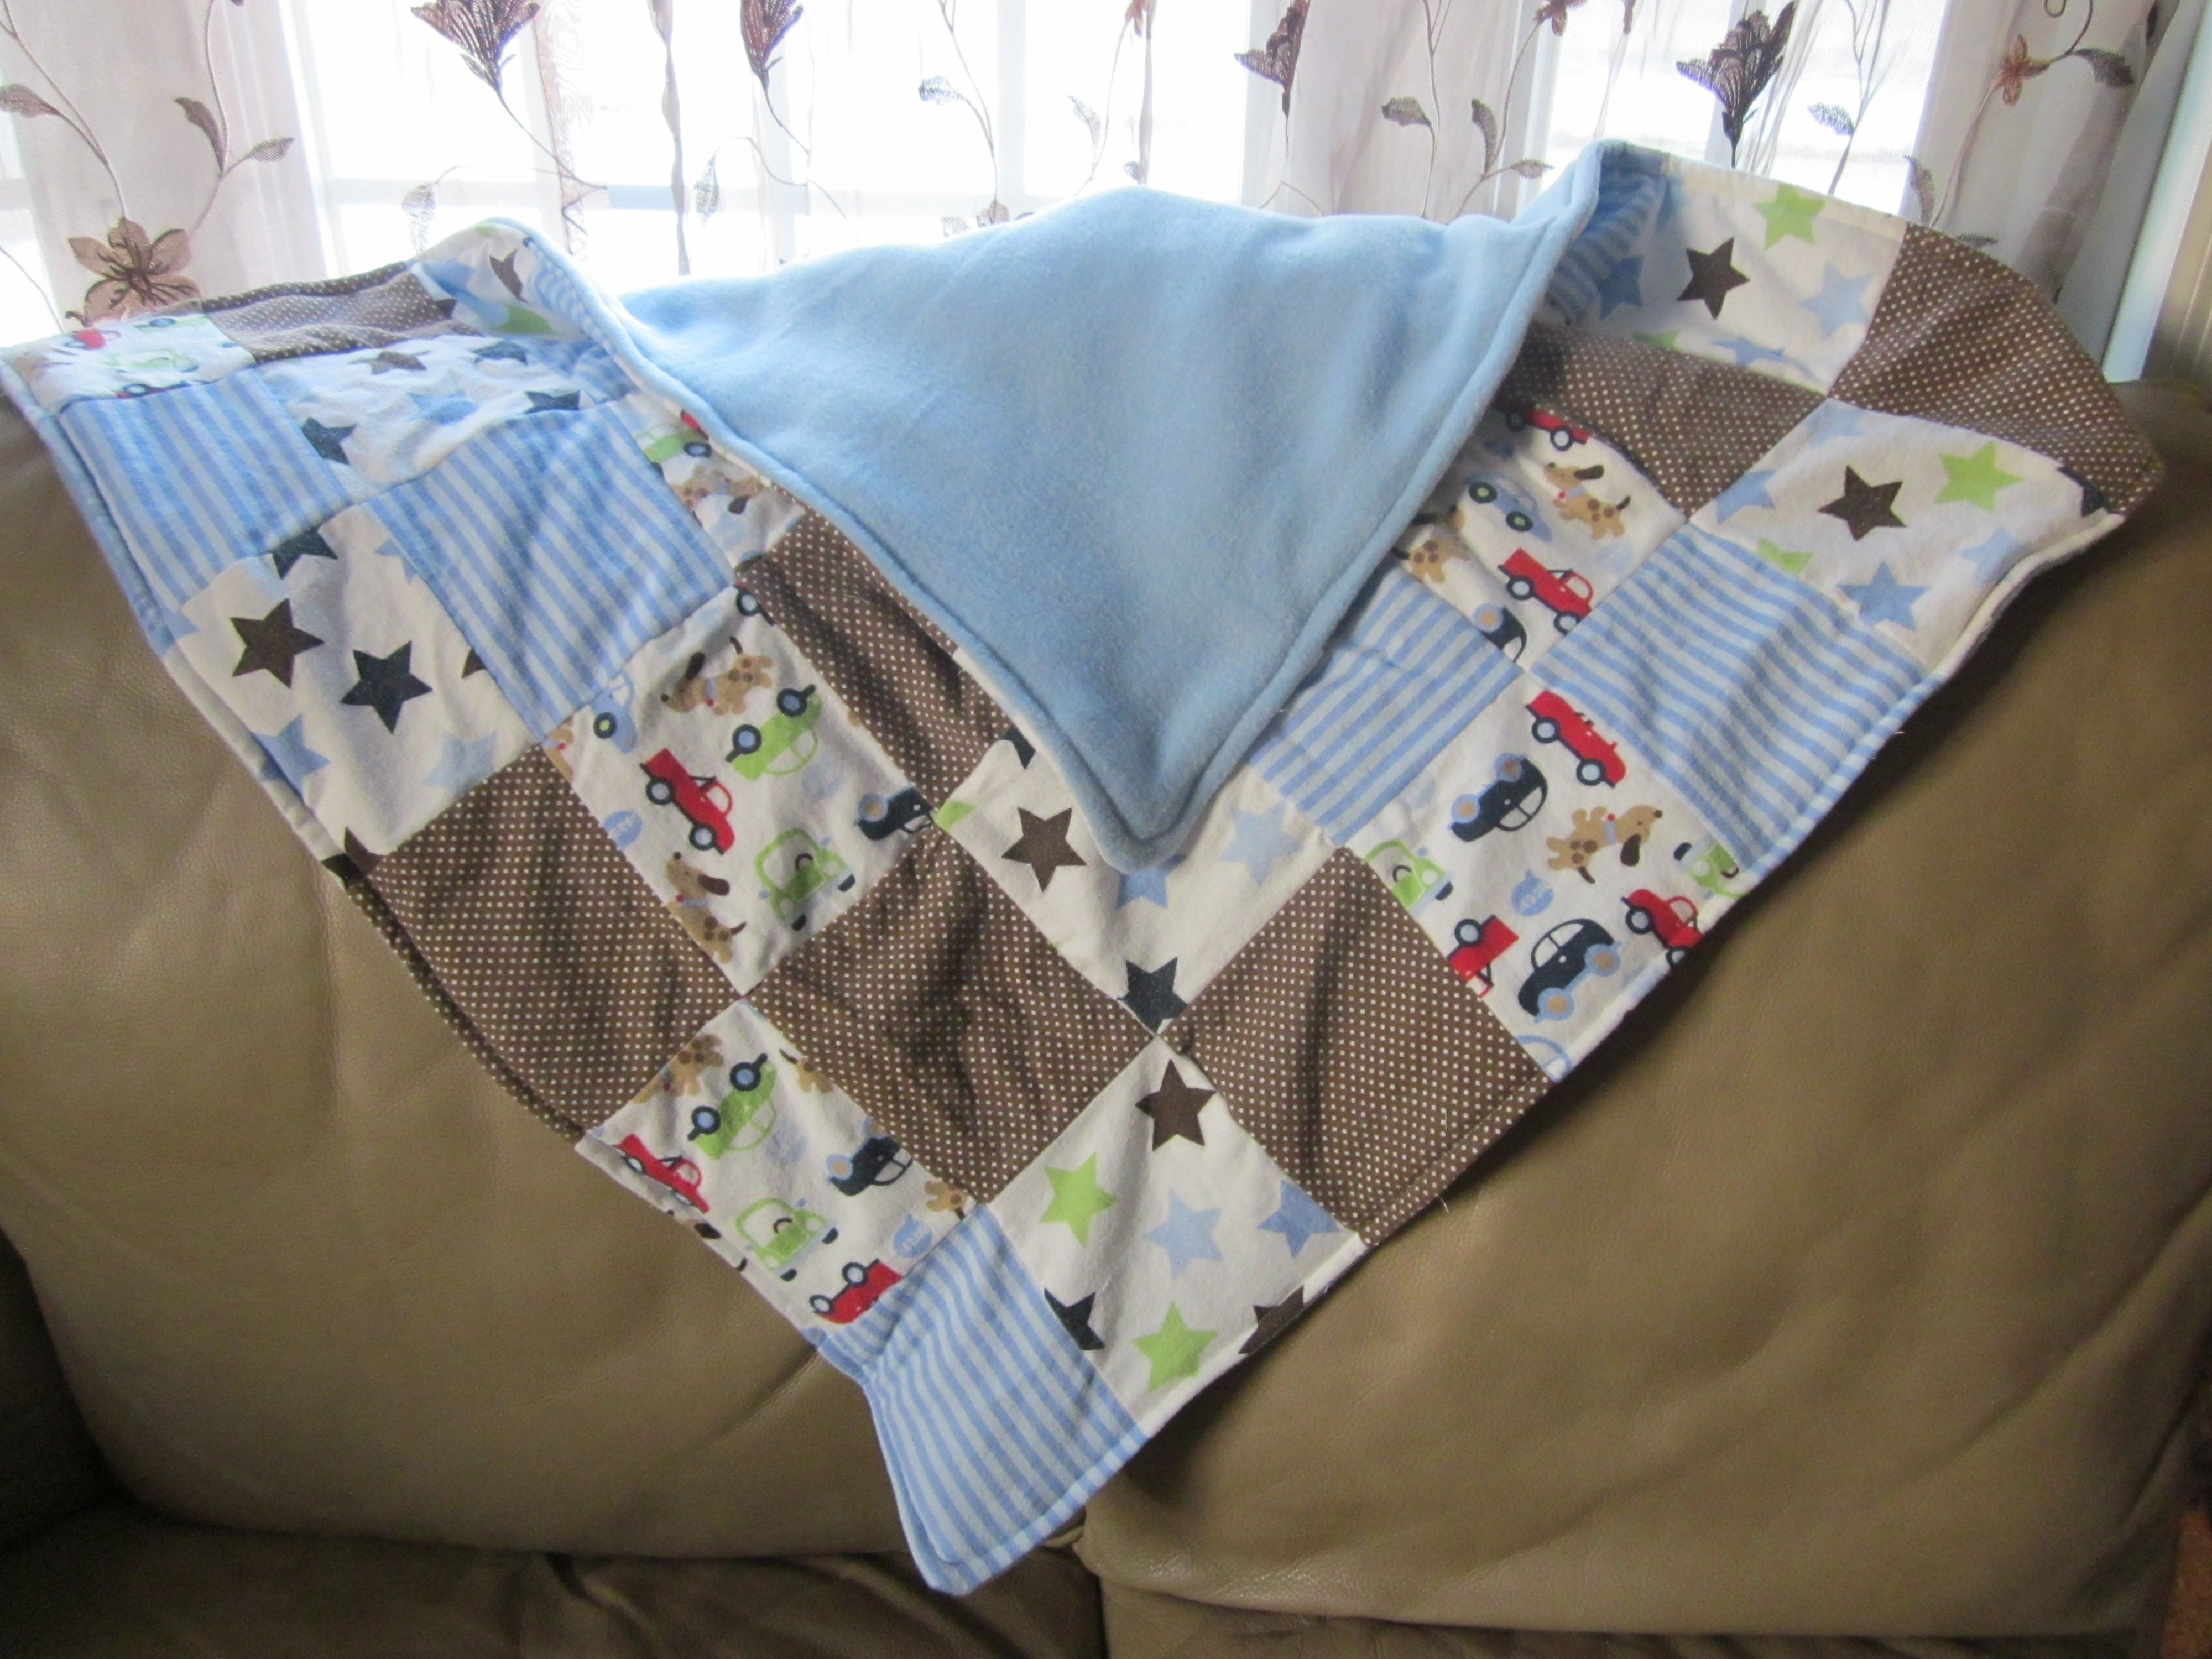 Baby quilt I created with my son's old receiving blankets that he ... : quilts blankets - Adamdwight.com